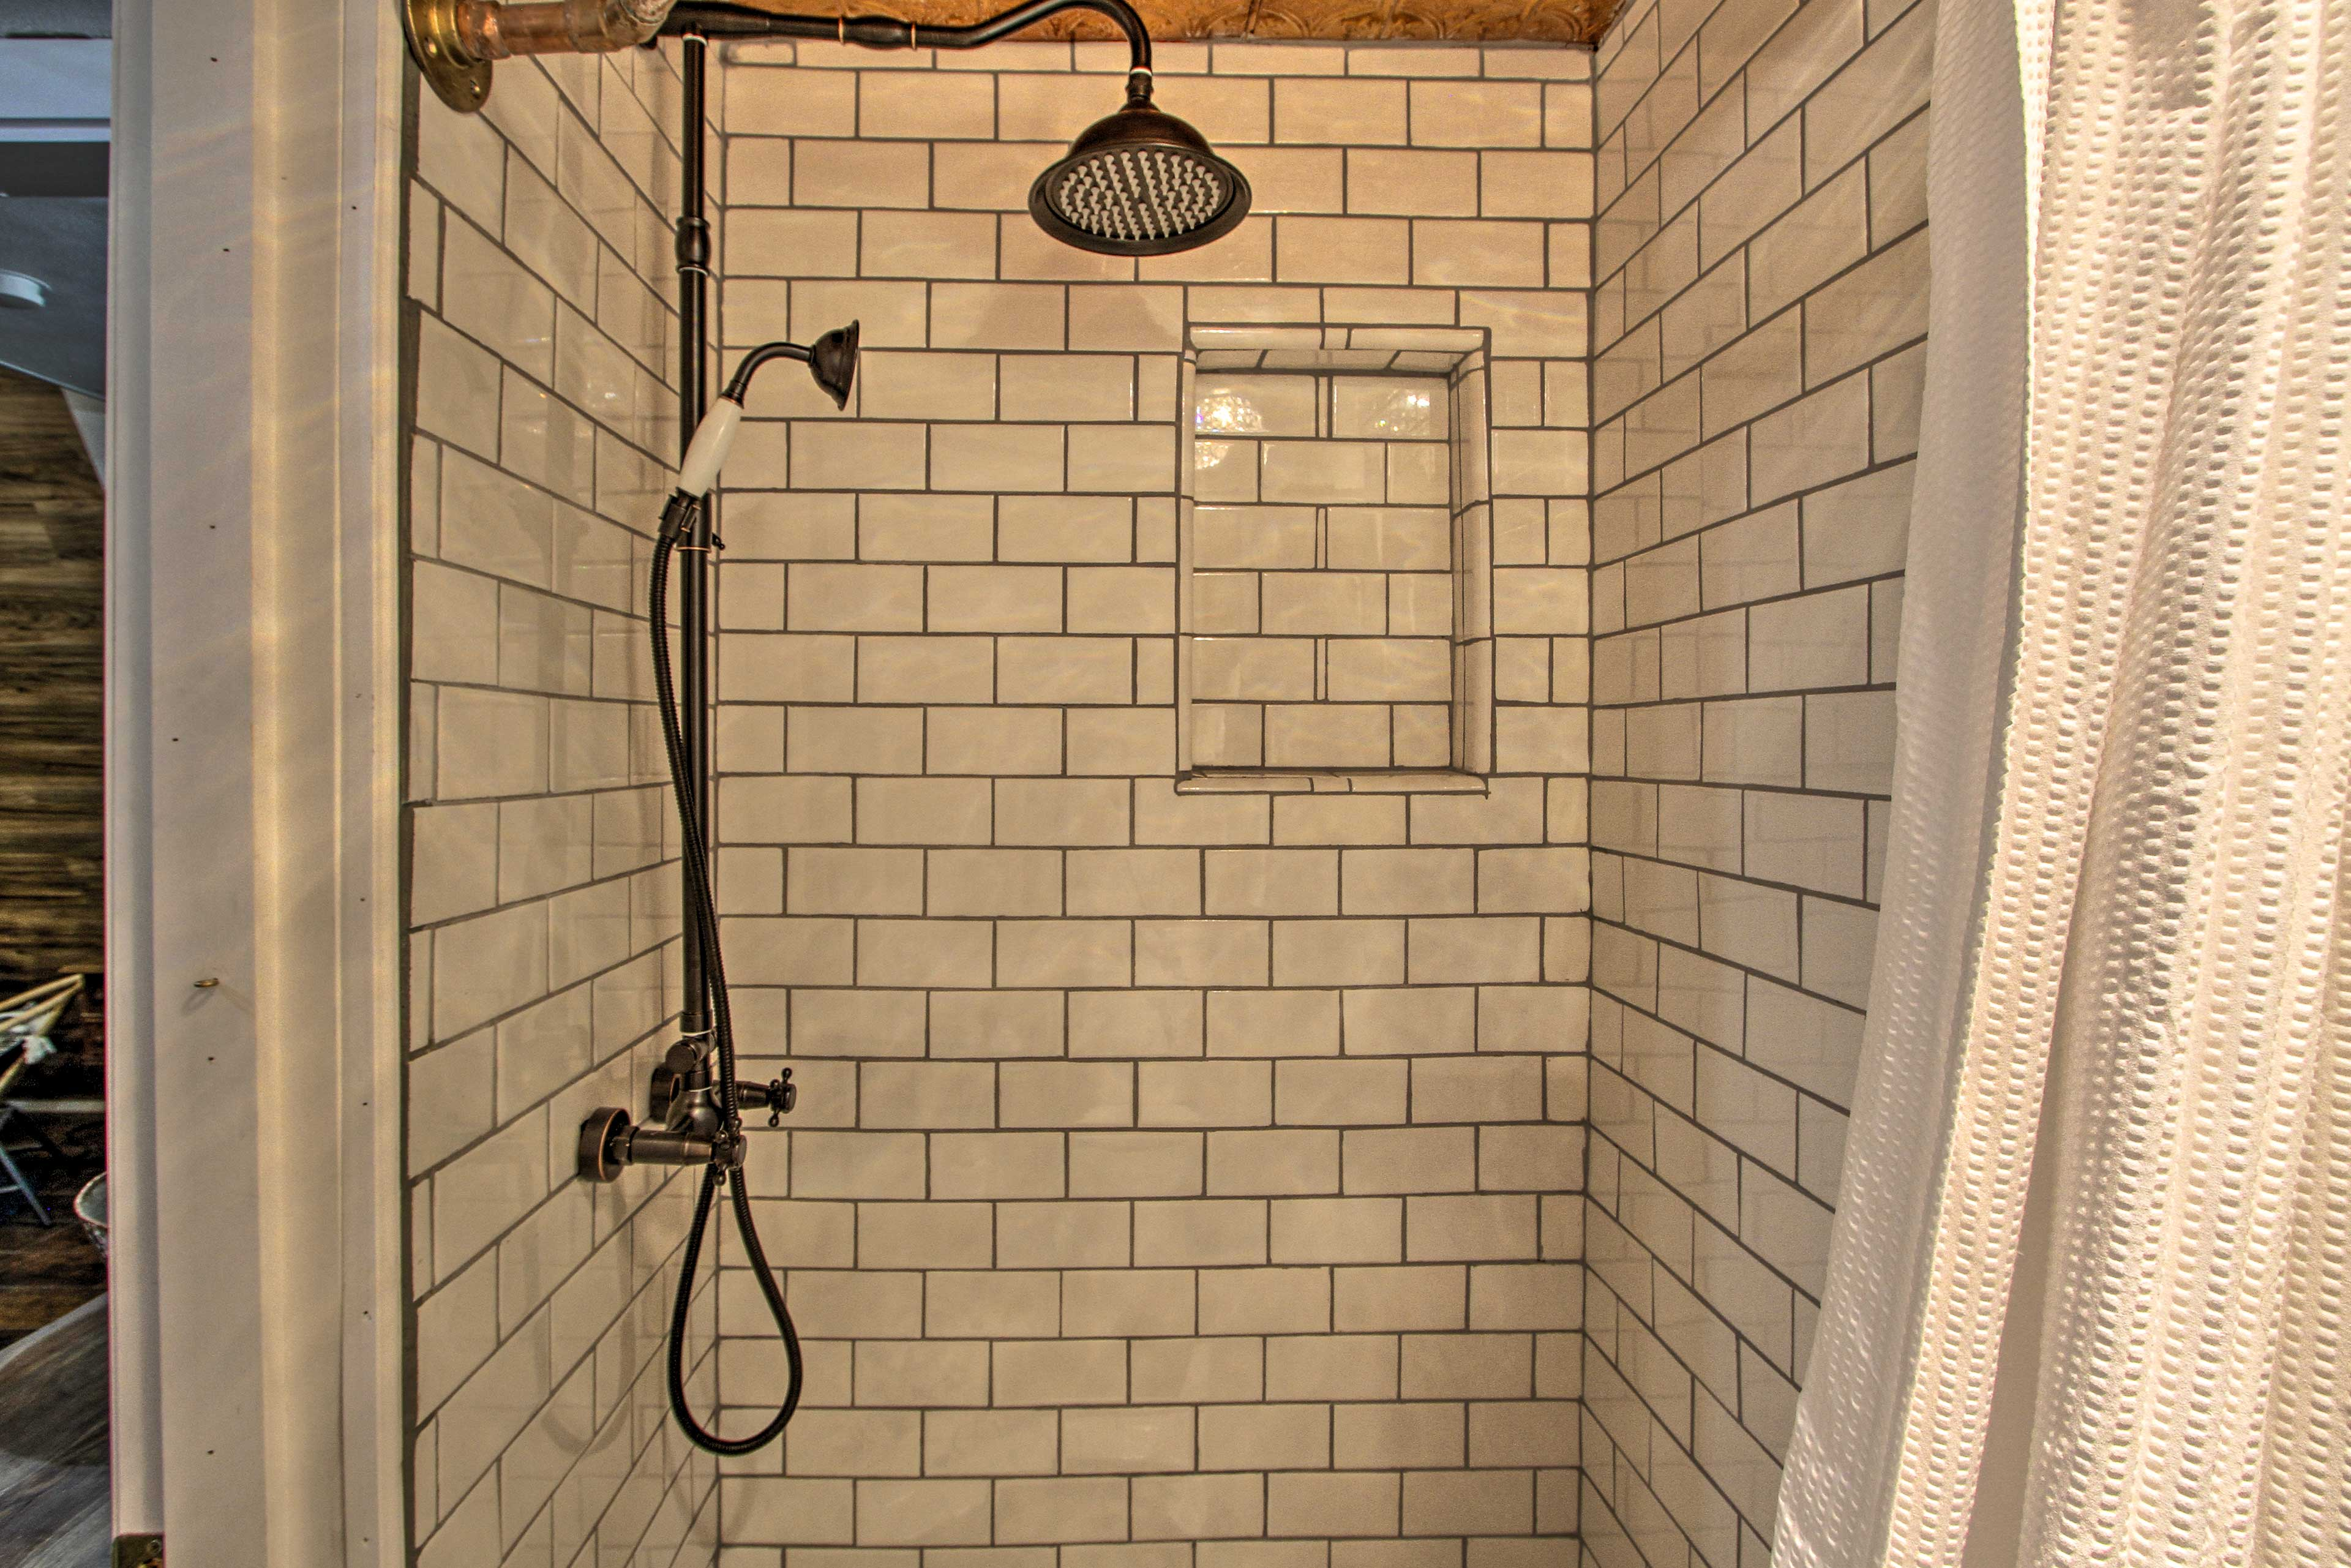 Rinse off under the rainfall showerhead before bed!